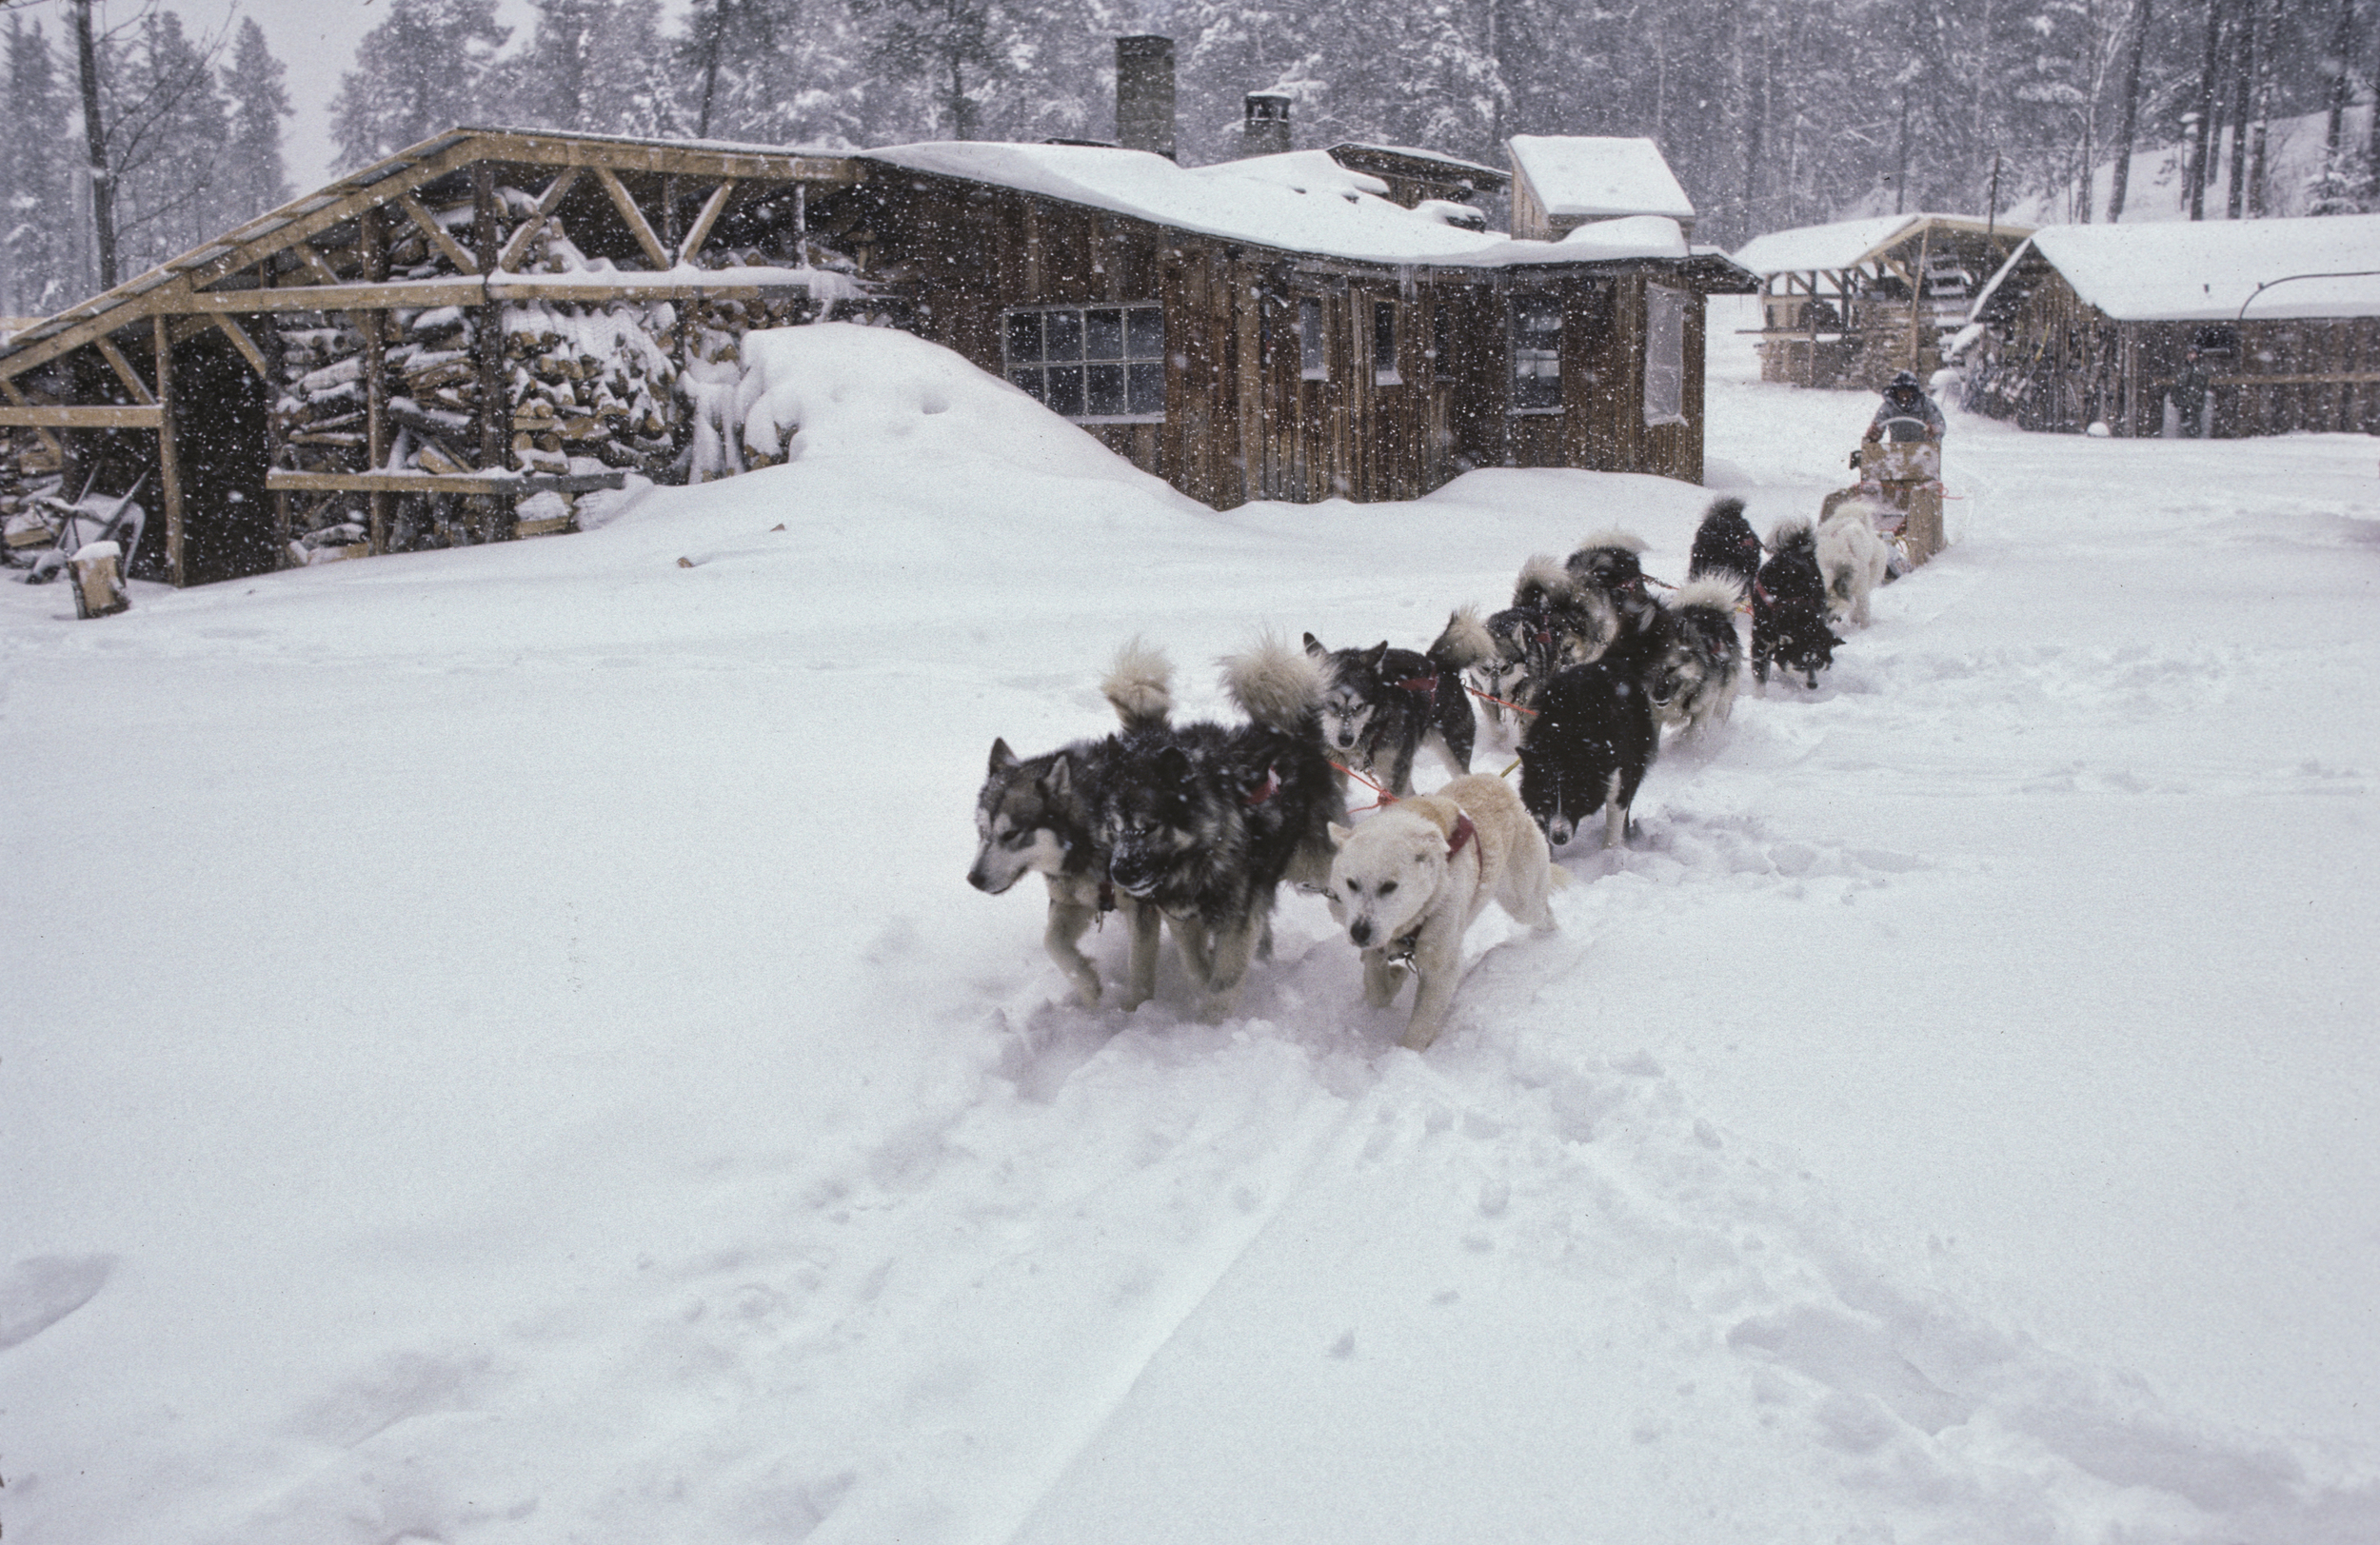 Keizo trained dogs for two winters at the Ely Homestead. ©Trans-Antarctica photo by Per Breiehagen